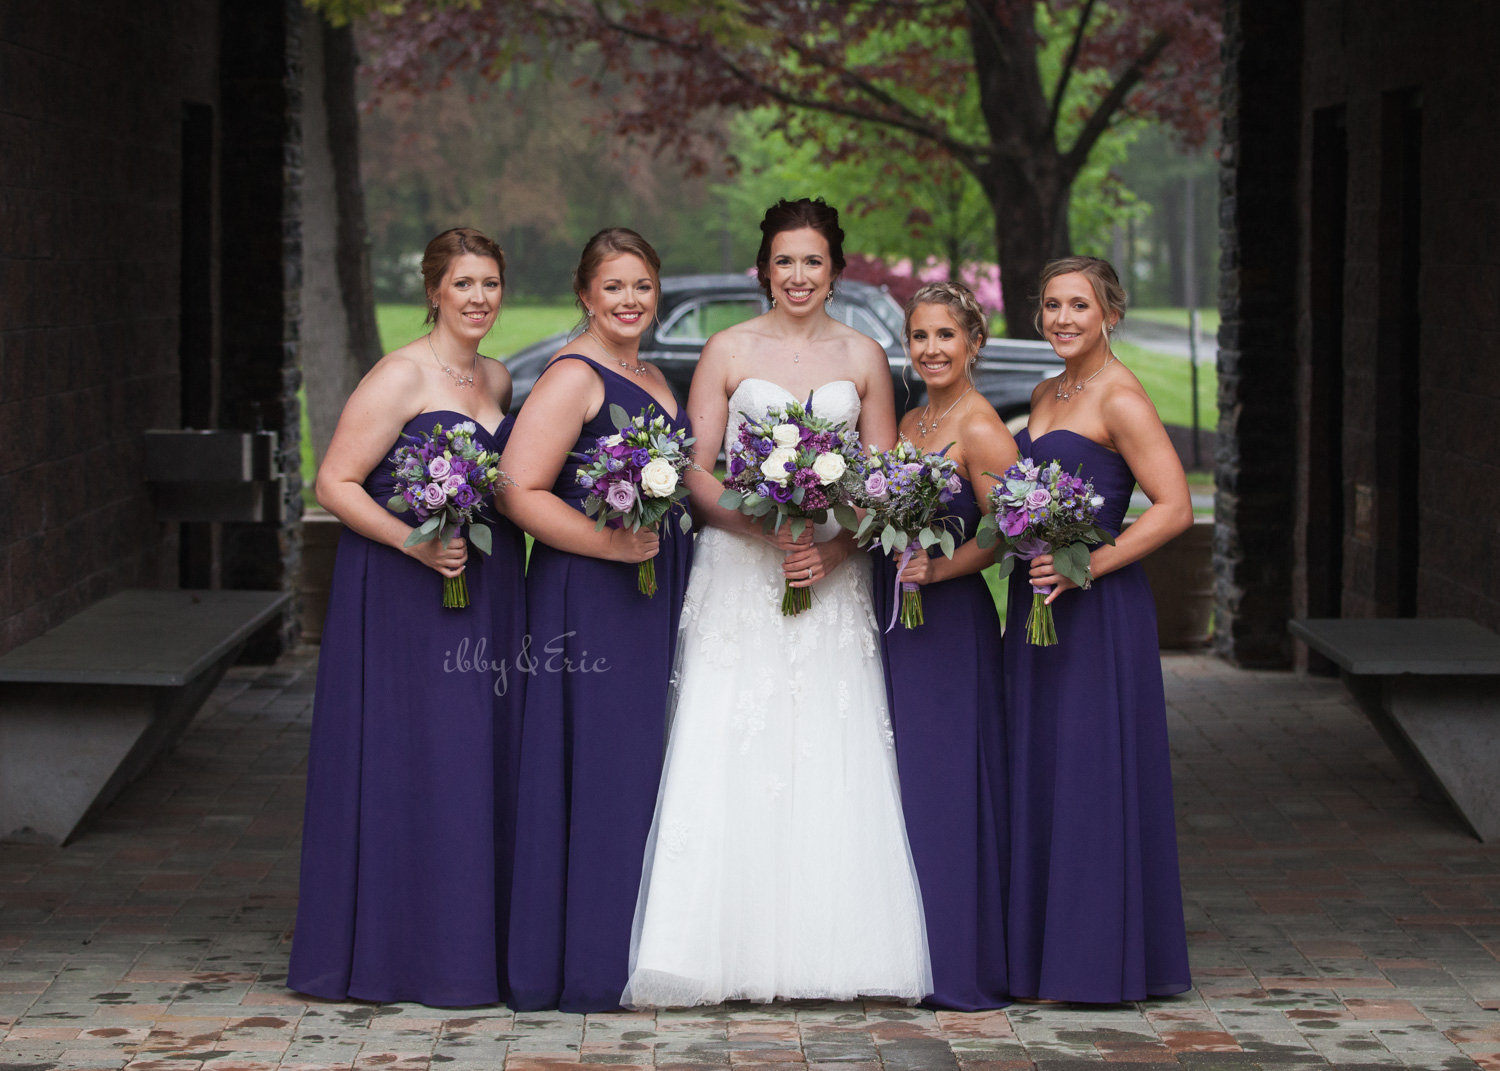 Bride in strapless lace wedding dress with her four best friends wearing purple bridesmaids dresses.